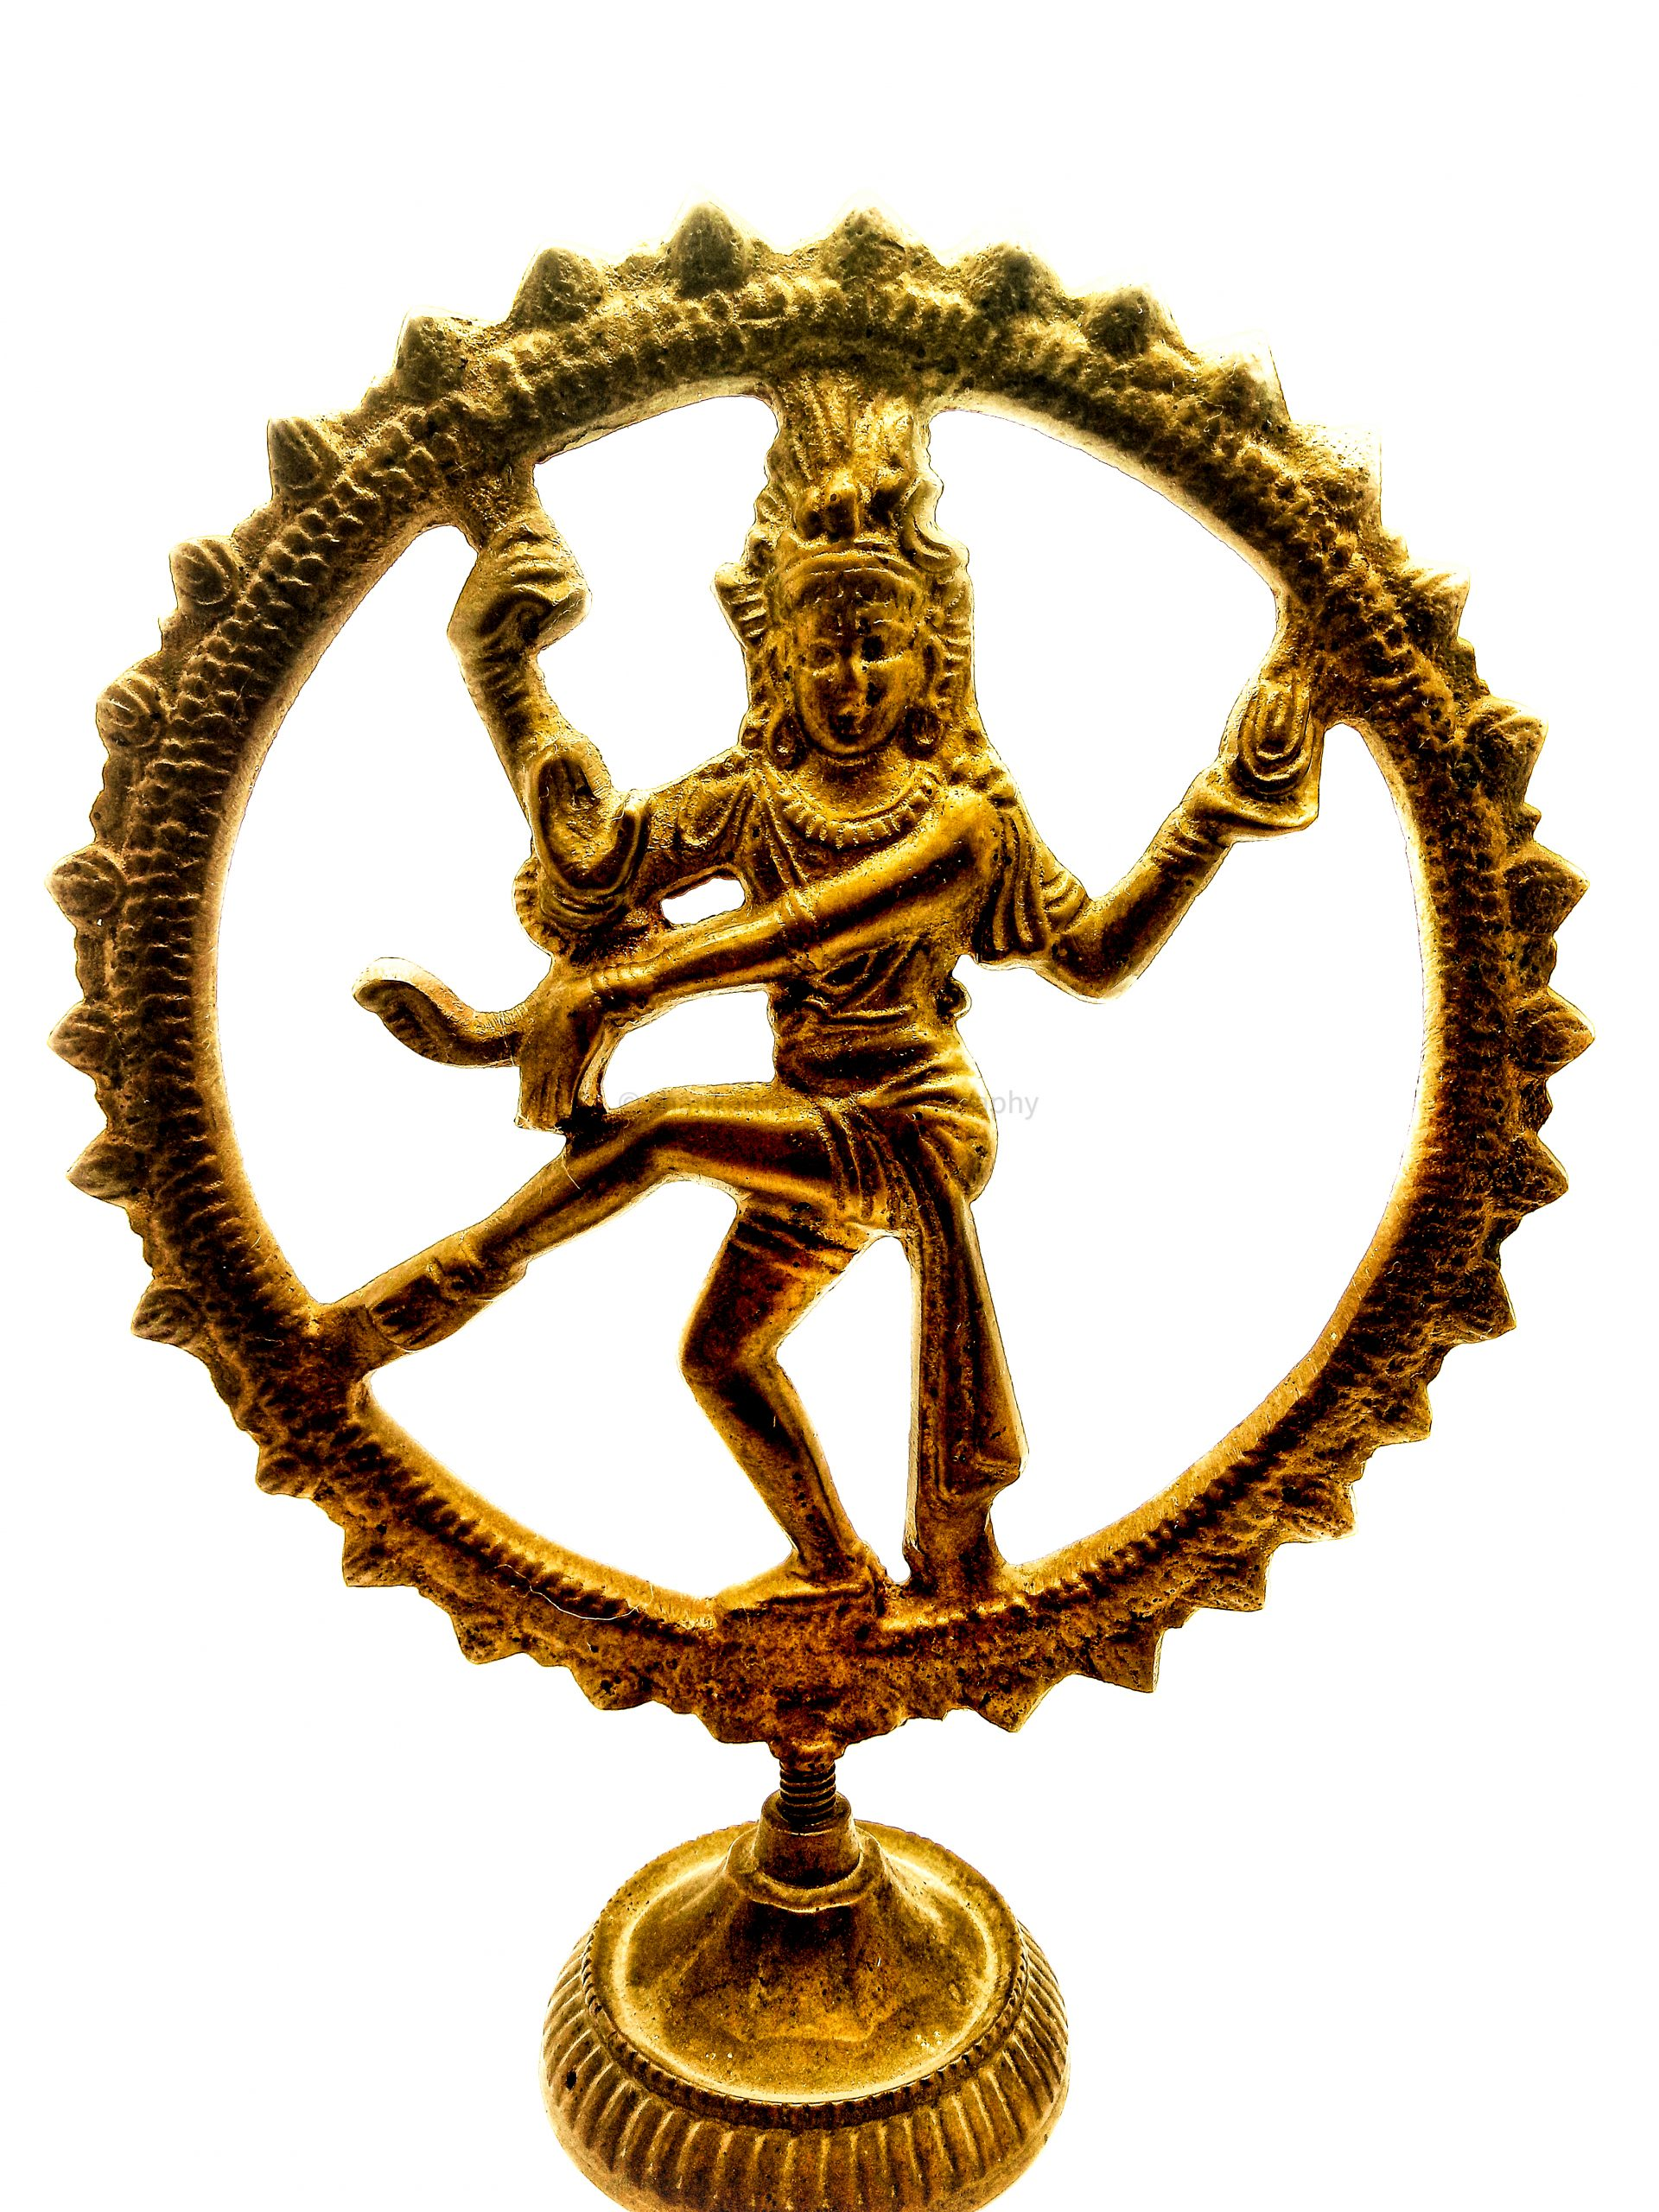 An idol of lord shiva